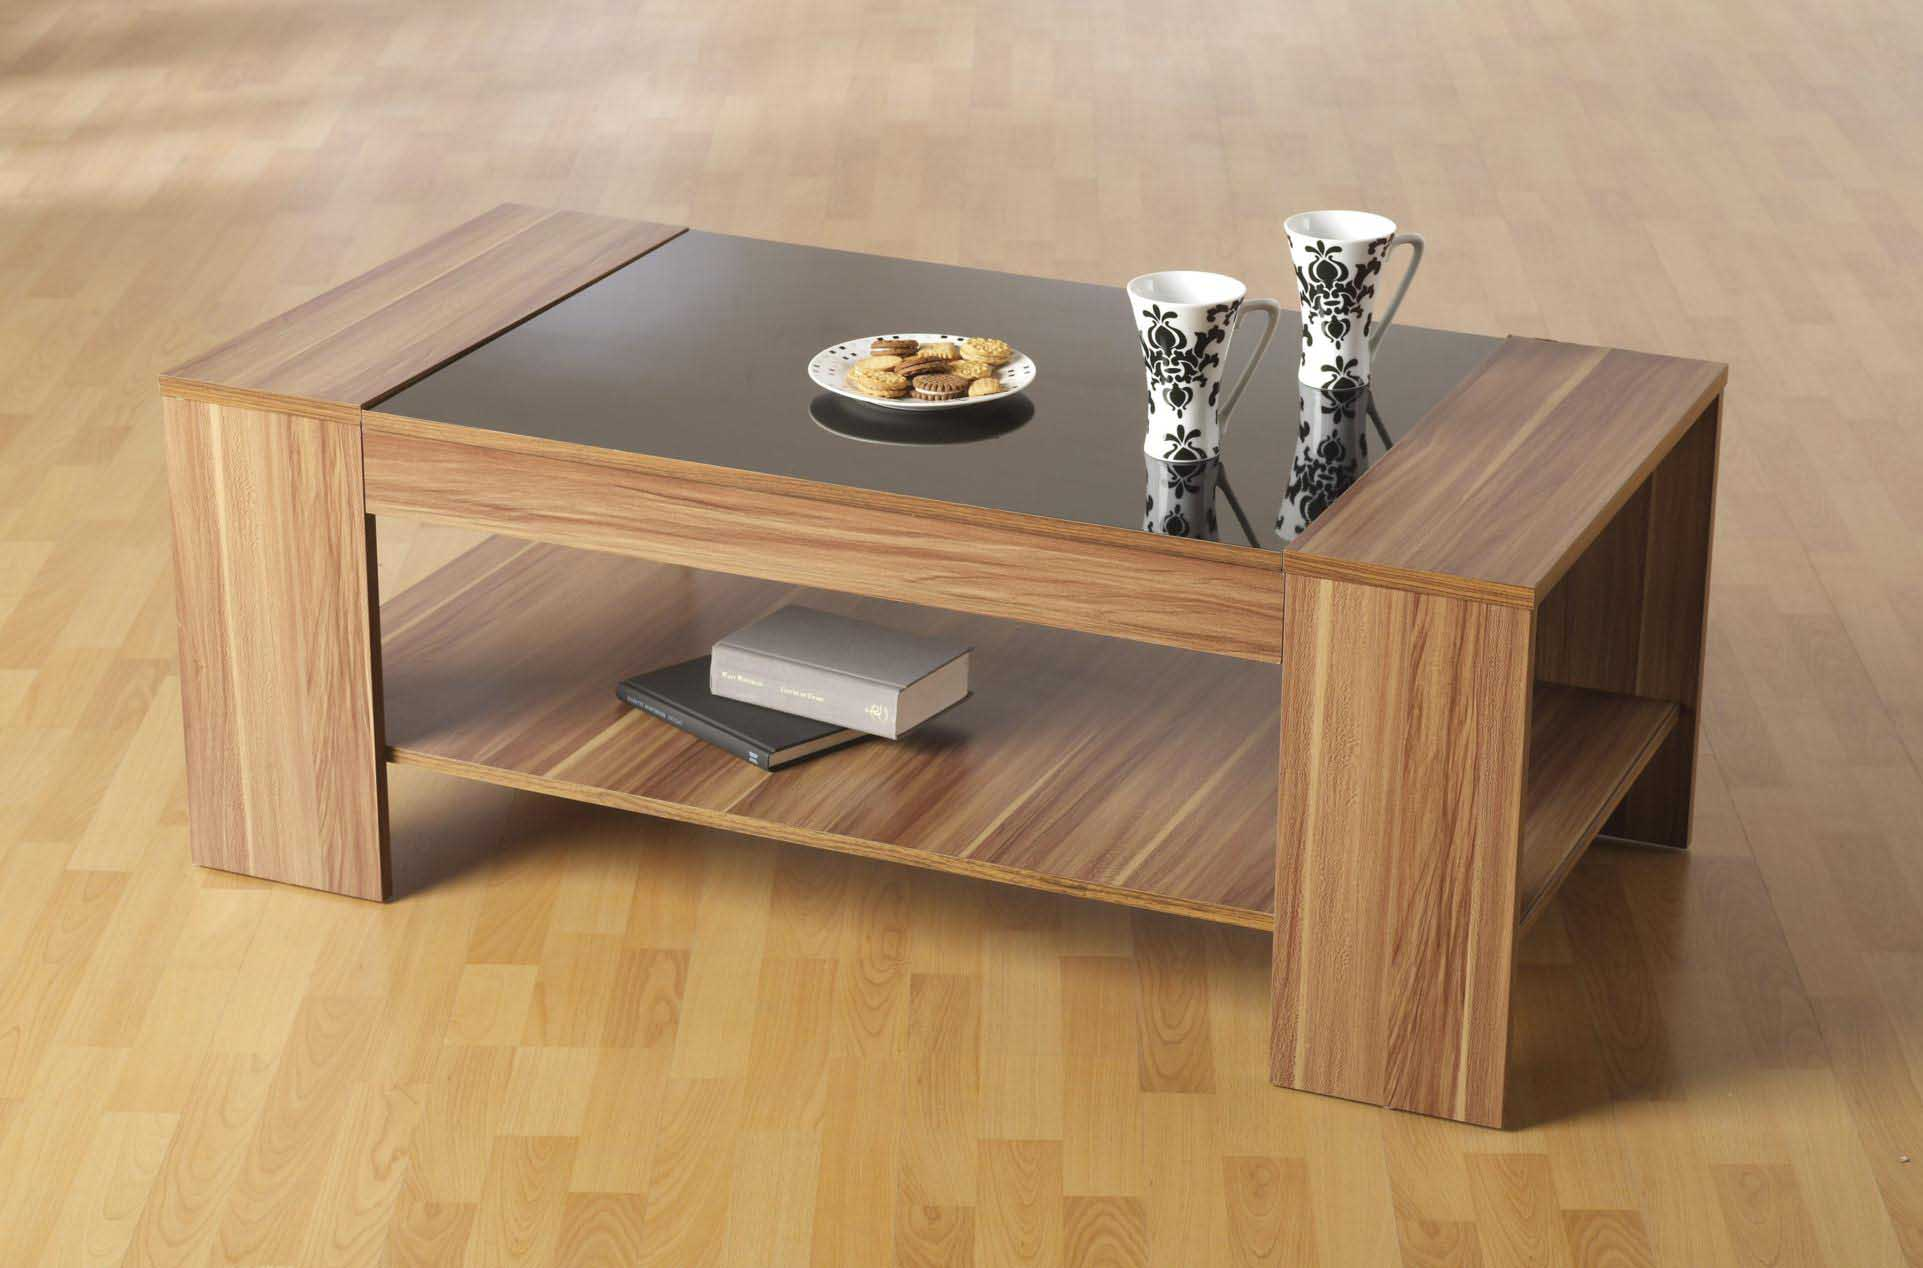 wooden coffee table design ideas photo - 7